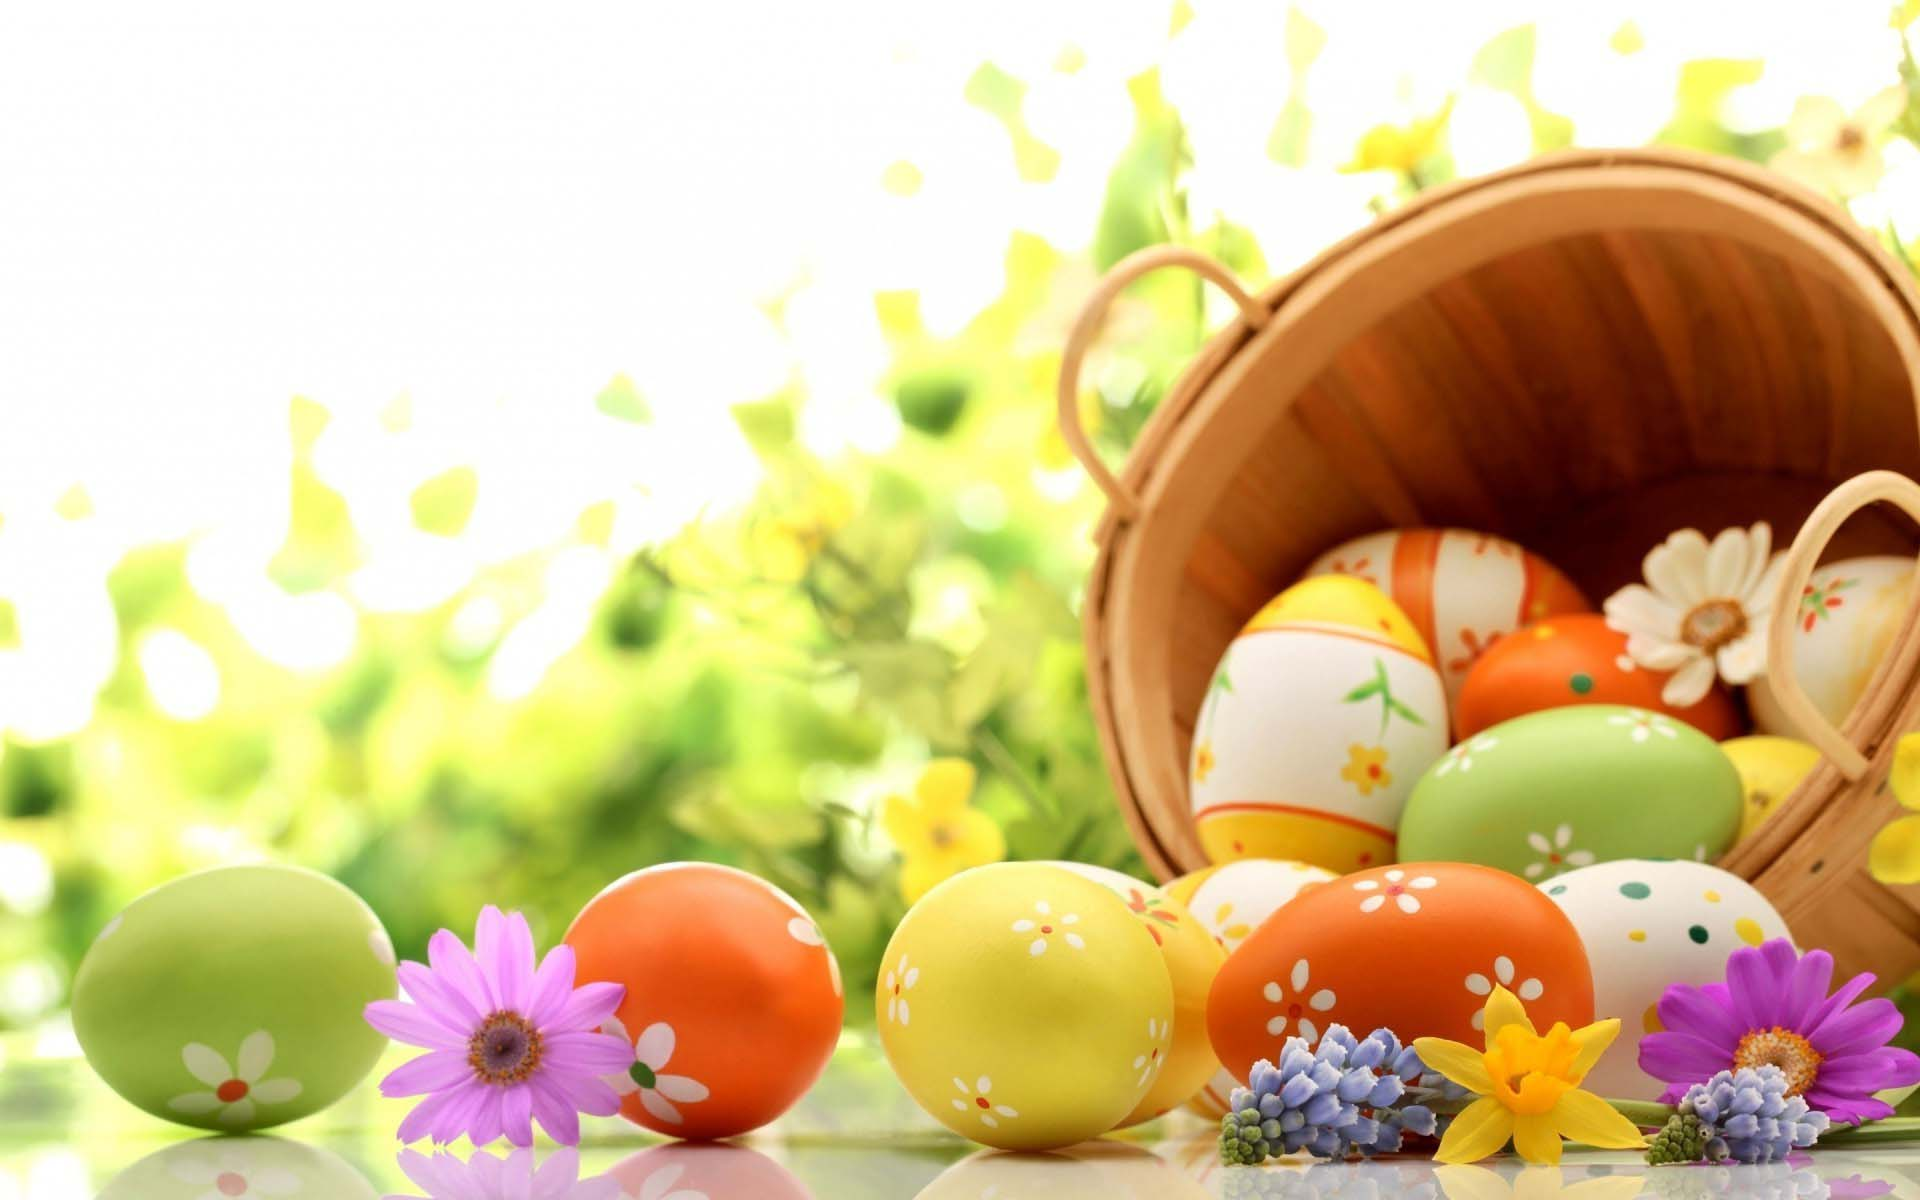 20 Happy Easter Wallpapers Backgrounds Images 1920x1200